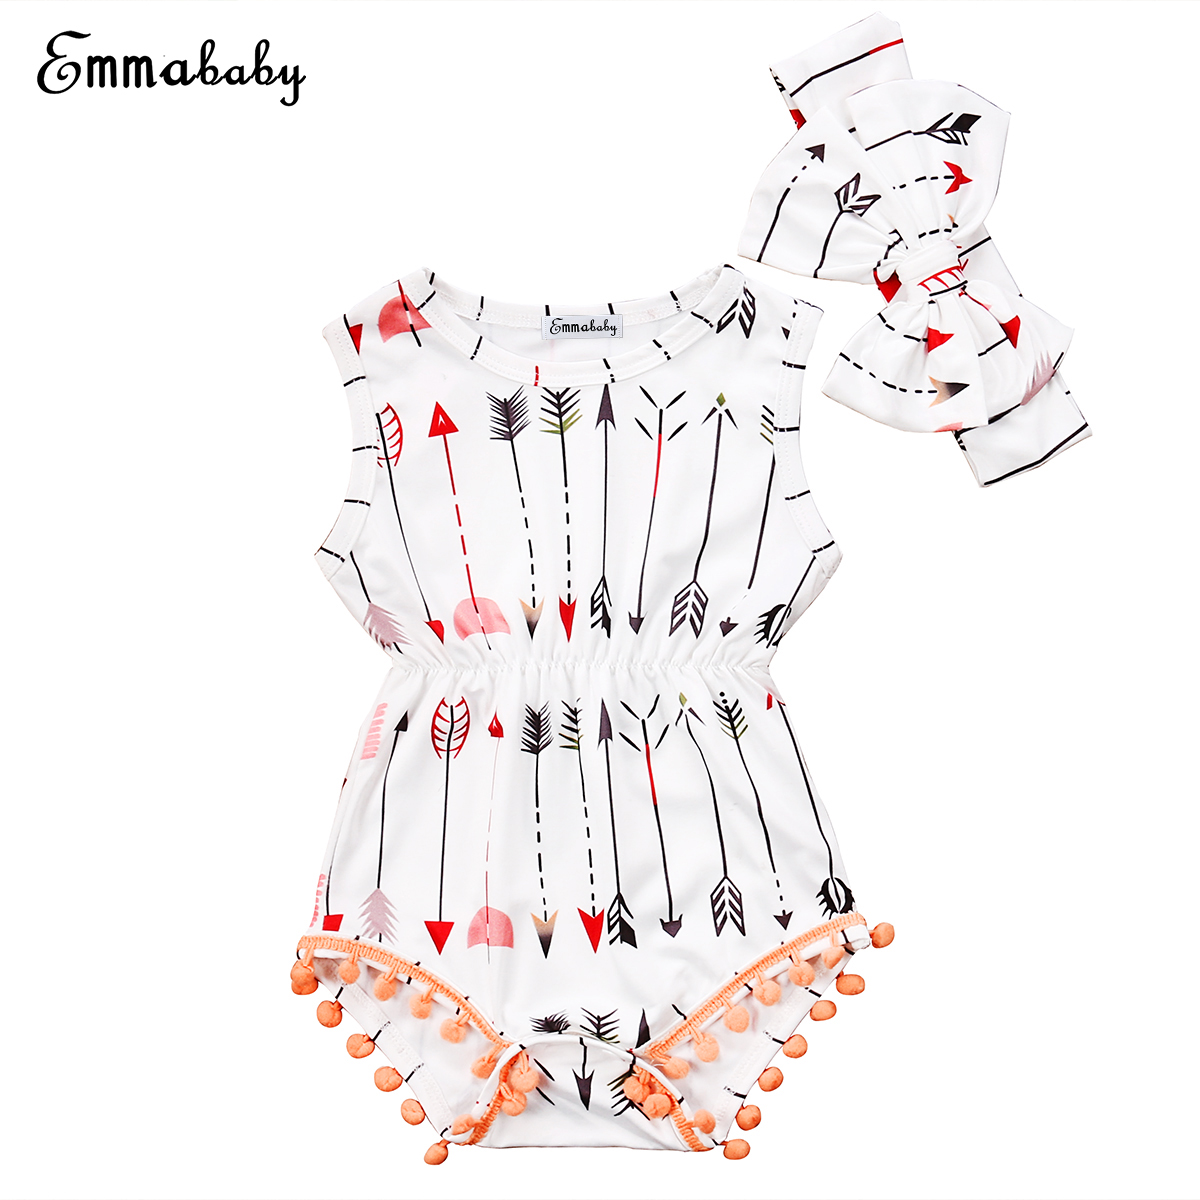 2017 Babies Girl Clothing Whilte Sleeveless Suit Newborn Toddler Baby Girls Arrow Bodysuit  Jumpsuit Outfit Clothes 0-24M fashion 2pcs set newborn baby girls jumpsuit toddler girls flower pattern outfit clothes romper bodysuit pants